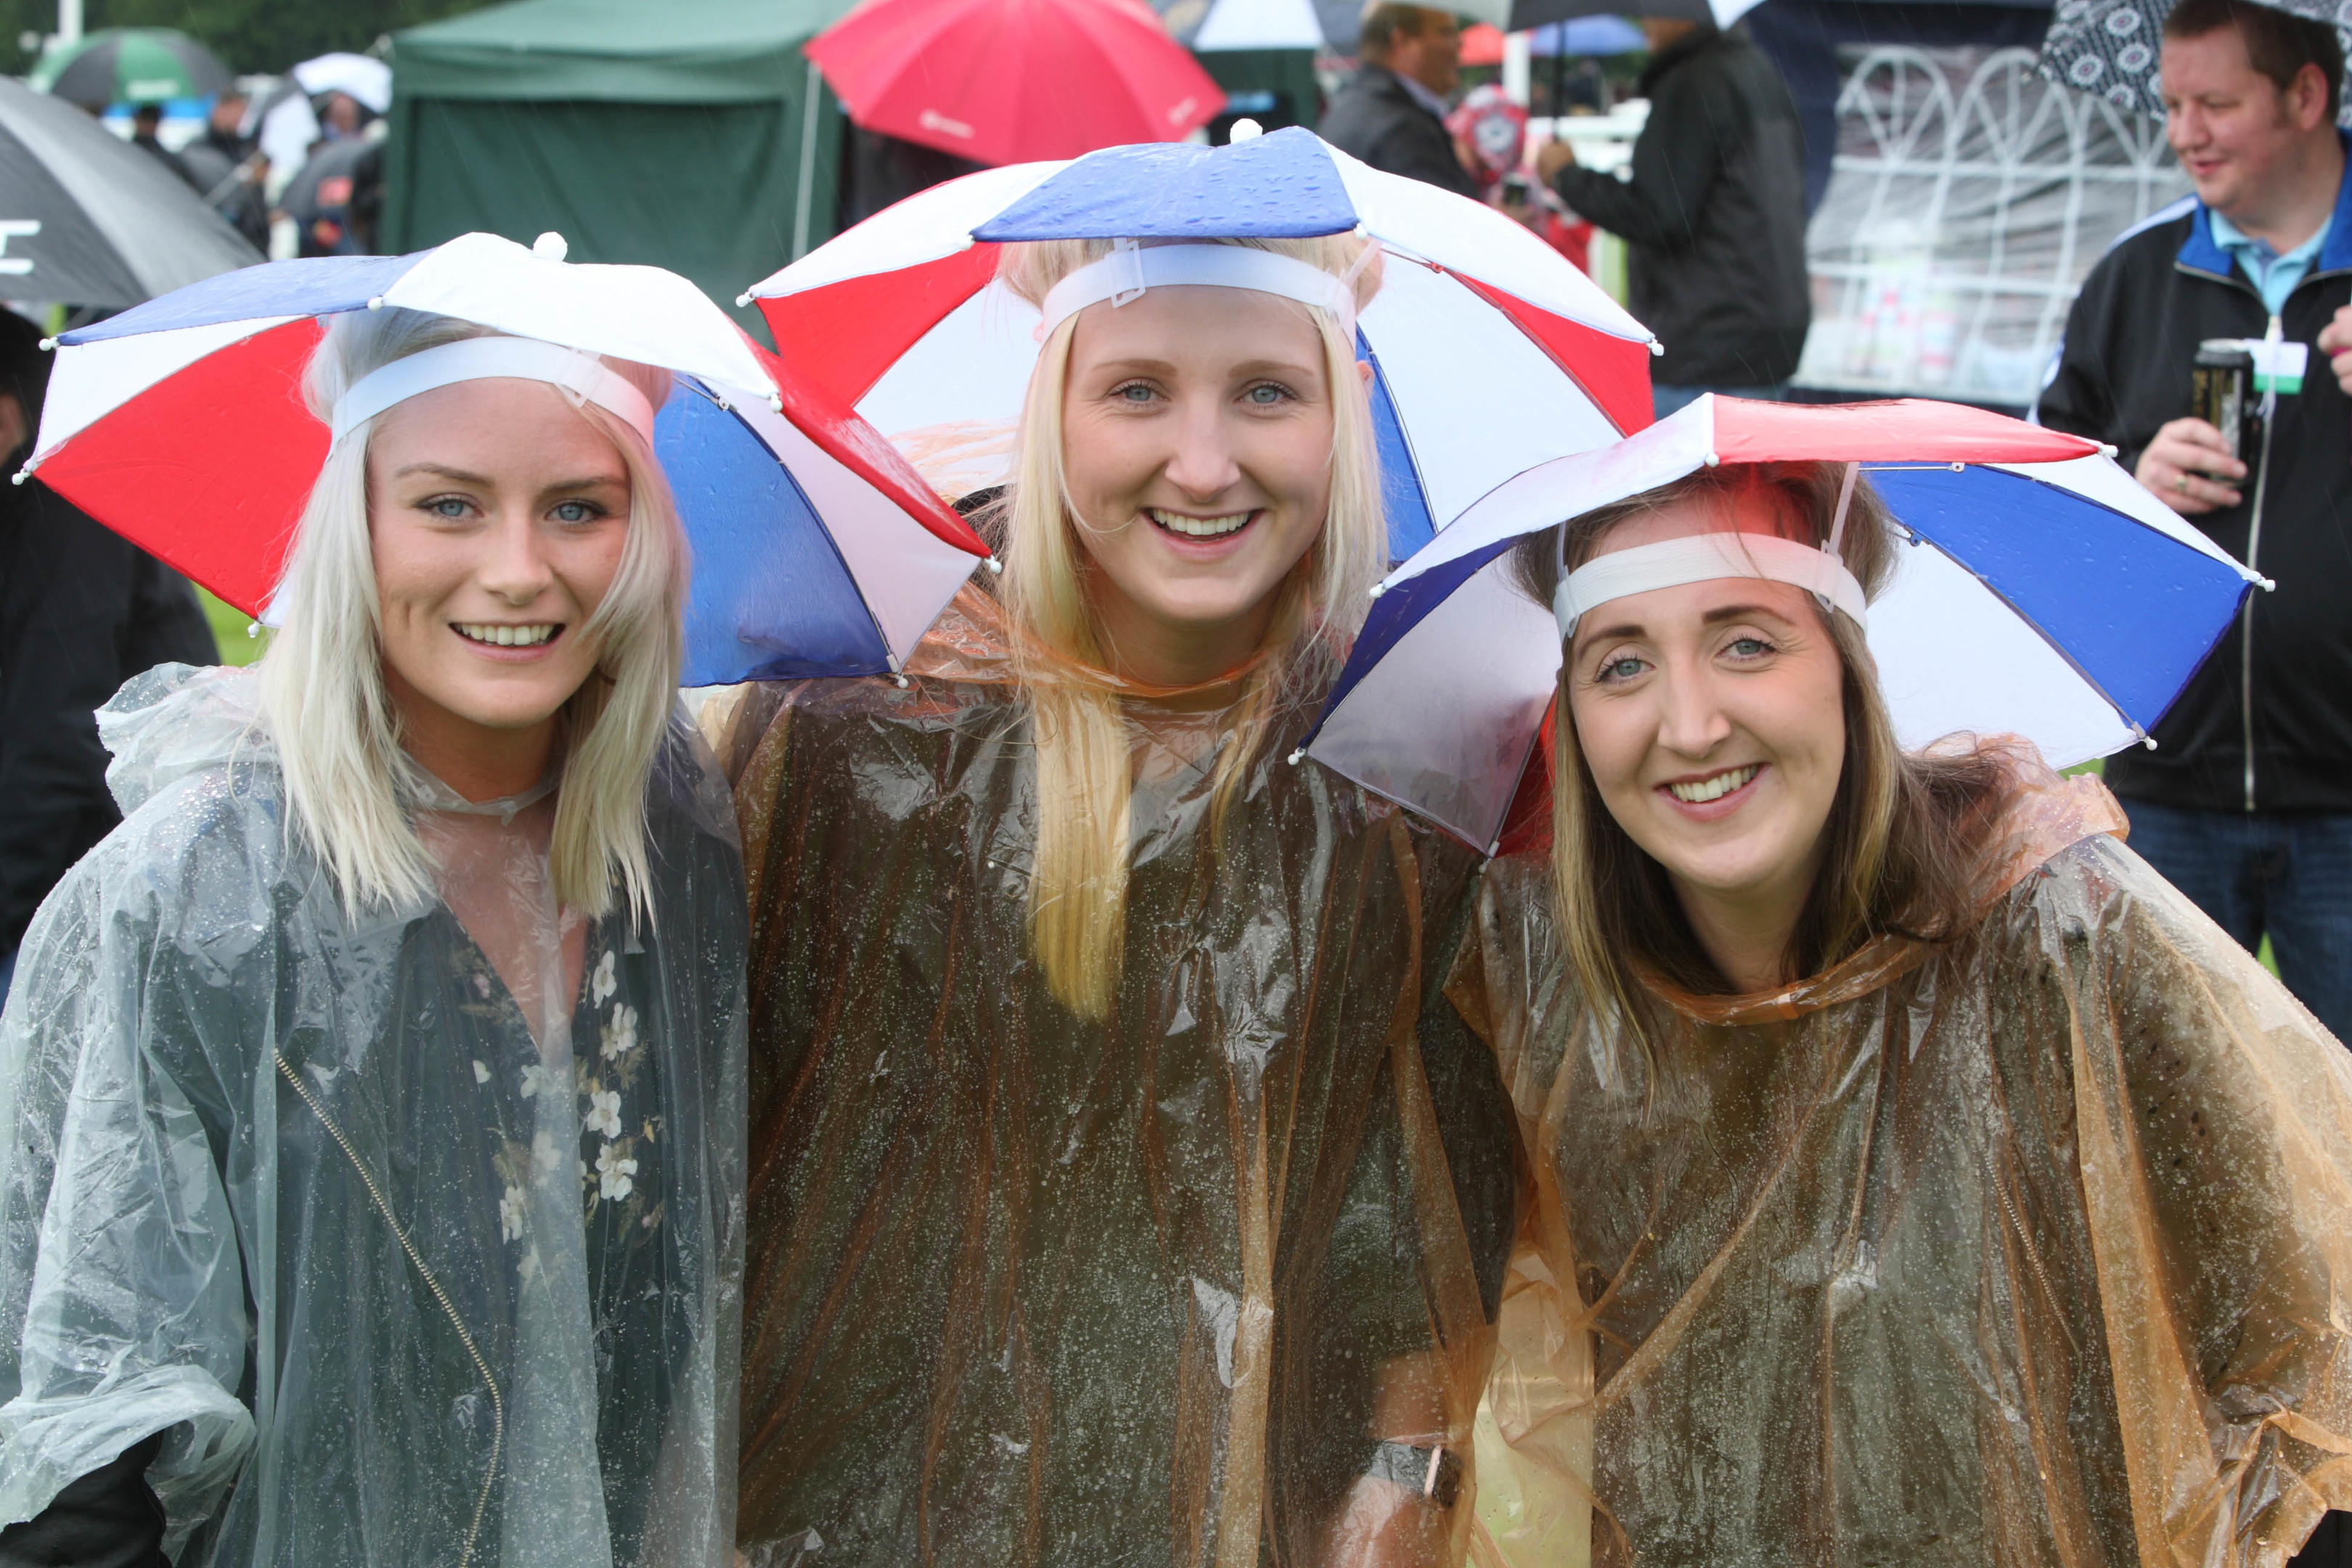 Lauren Stewart Laura Mutch and Rachel Mutch , from Aberdeen were ready for the rain.